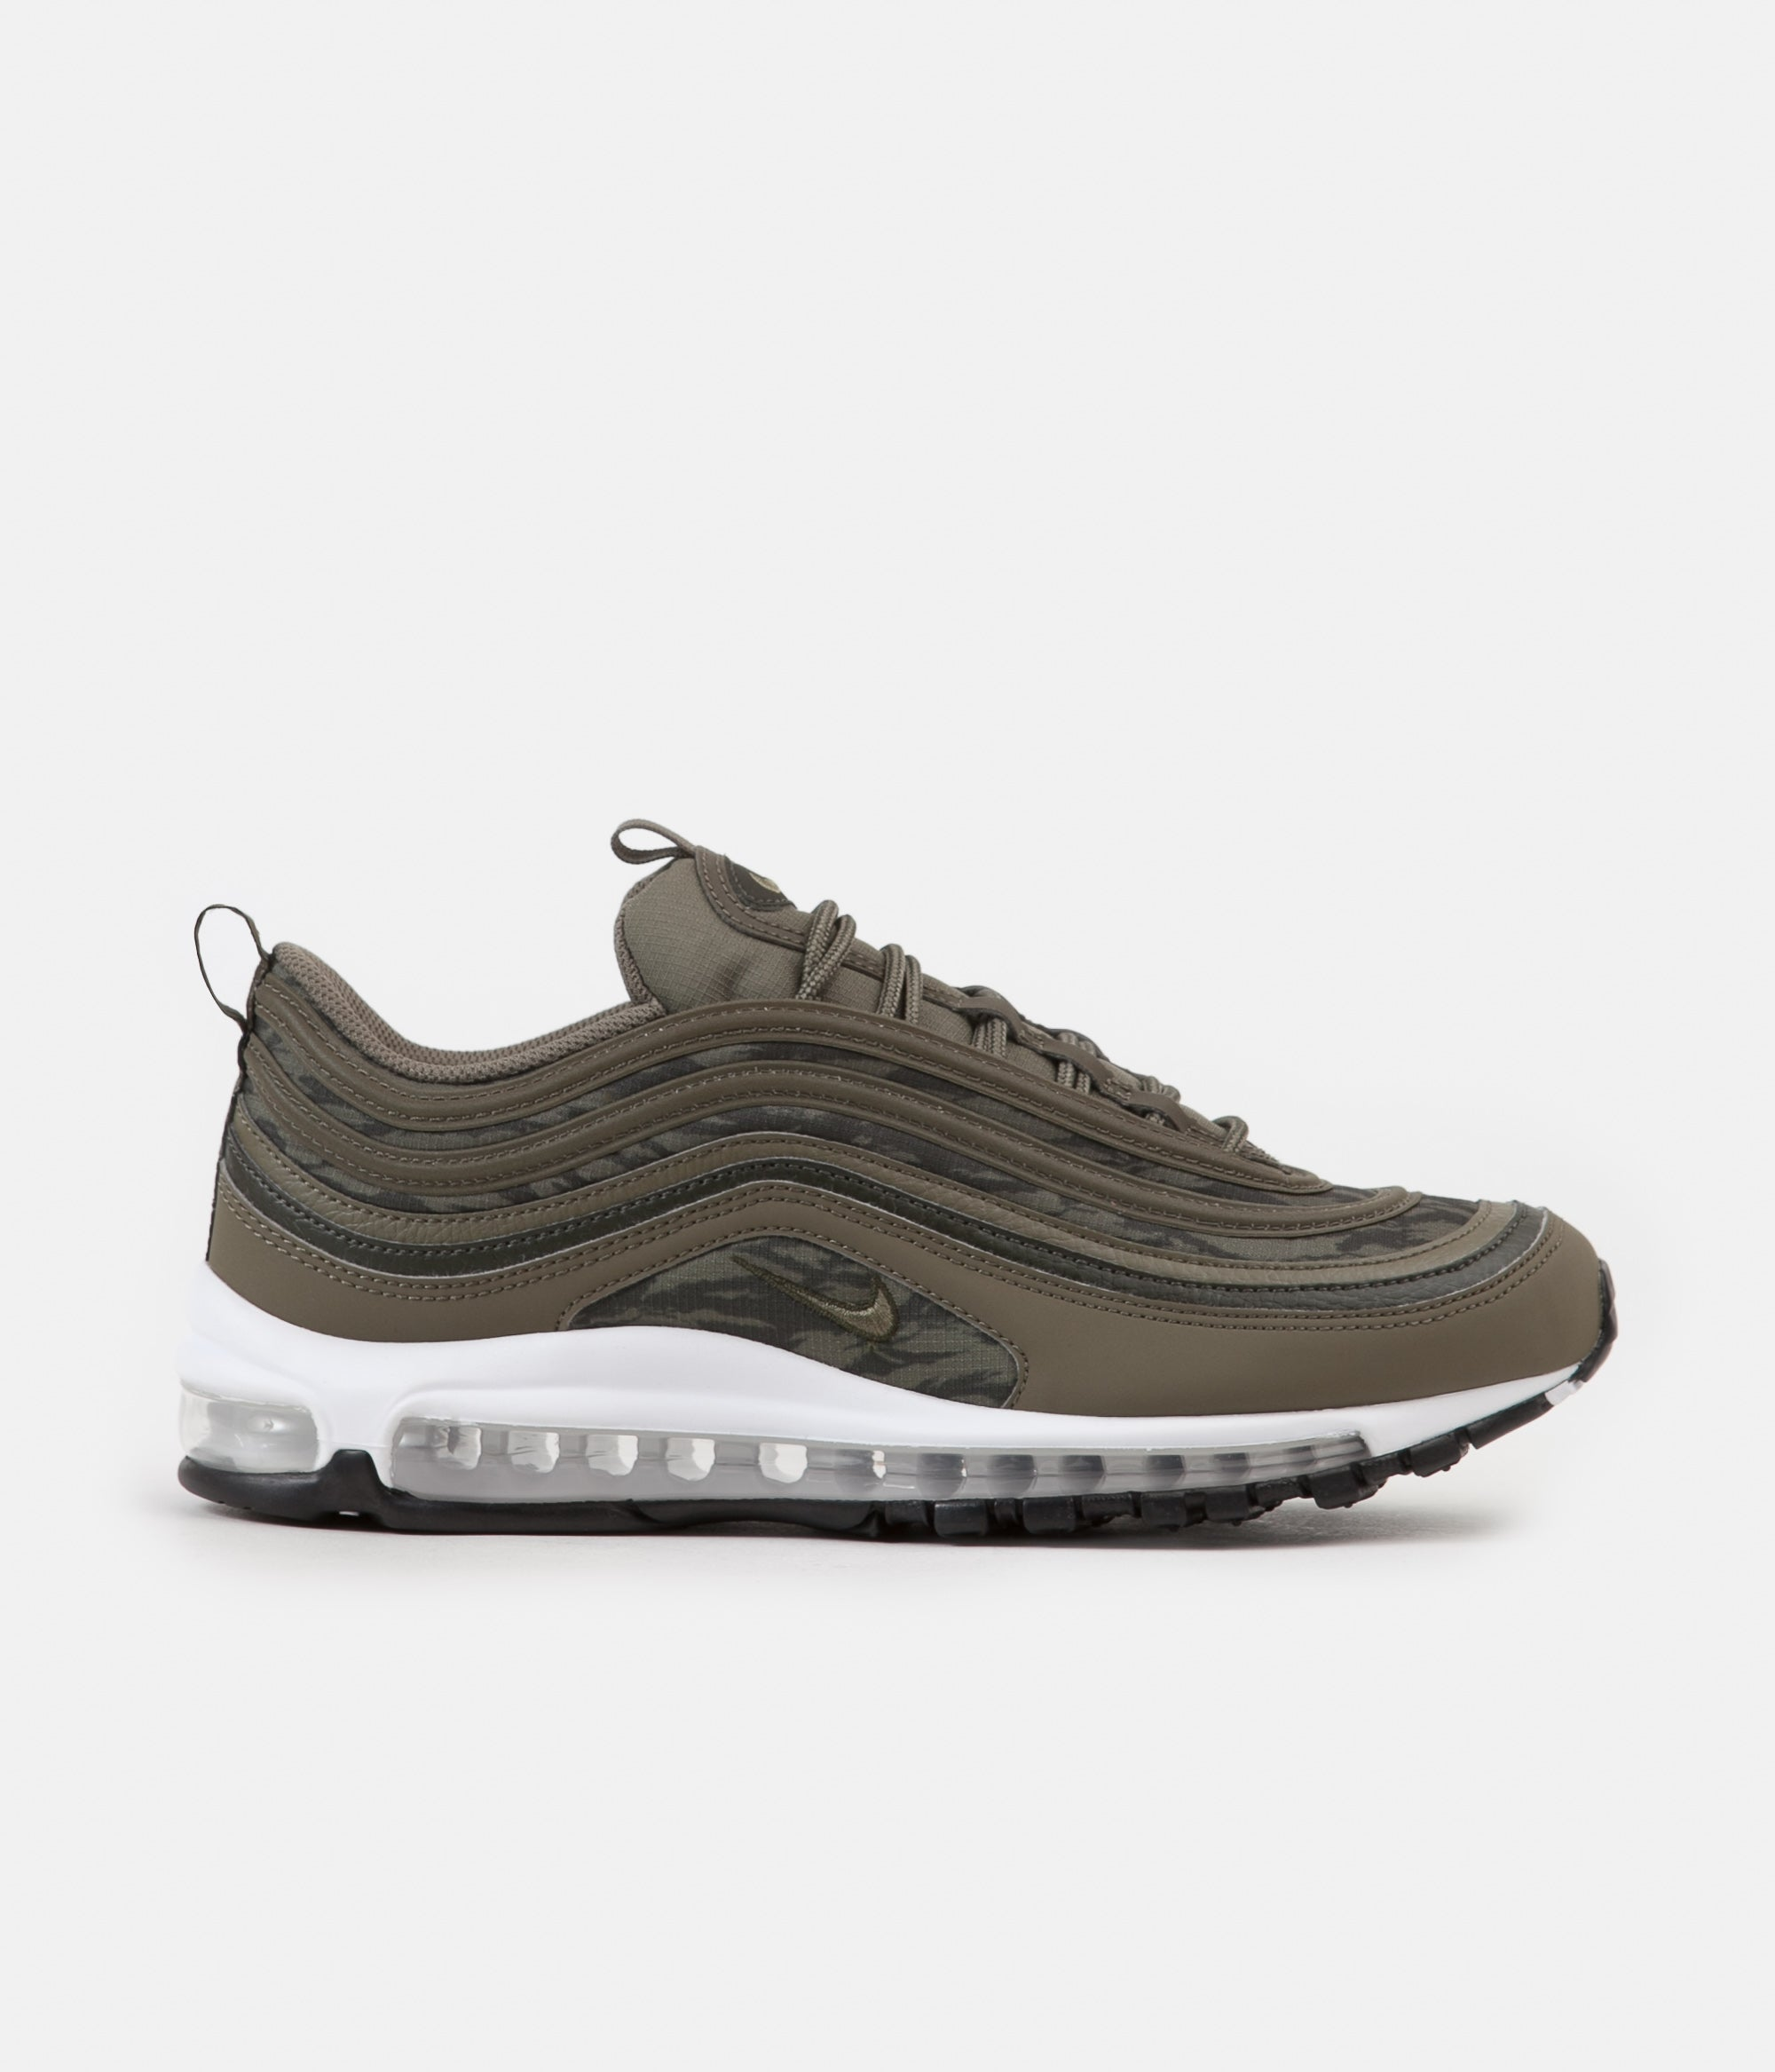 1e97f3117618 ... Nike Air Max 97 AOP Shoes - Medium Olive   Medium Olive - Sequoia -  Black ...